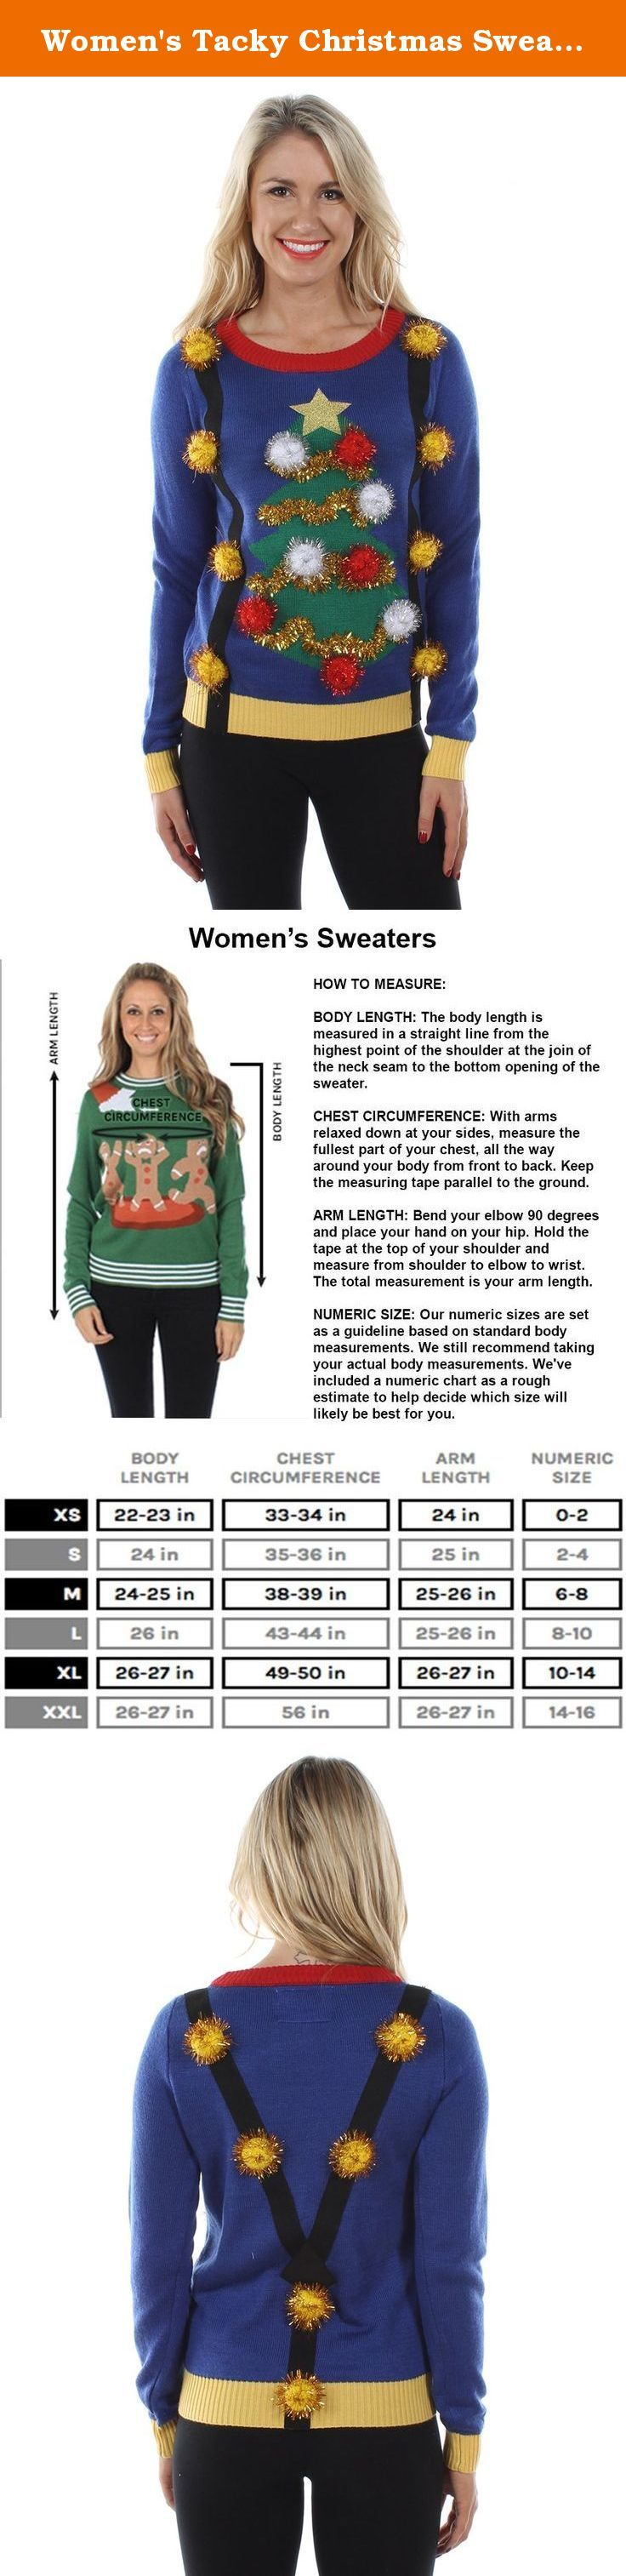 Women's Tacky Christmas Sweater - Christmas Tree Sweater with Suspenders L. Tipsy Elves Christmas Sweaters are perfect for your Ugly Christmas Sweater party, holiday pub crawls, the ski cabin, and they always make a great gift!. Our Christmas Sweaters are featured on ABC's Shark Tank, the TODAY Show, ABC's Wipeout!, People Magazine, Trendhunter, and much more!. See all of Tipsy Elves' Funny Christmas sweaters sold right here on Amazon. Shop over 50 exclusive designs for men and women! All...